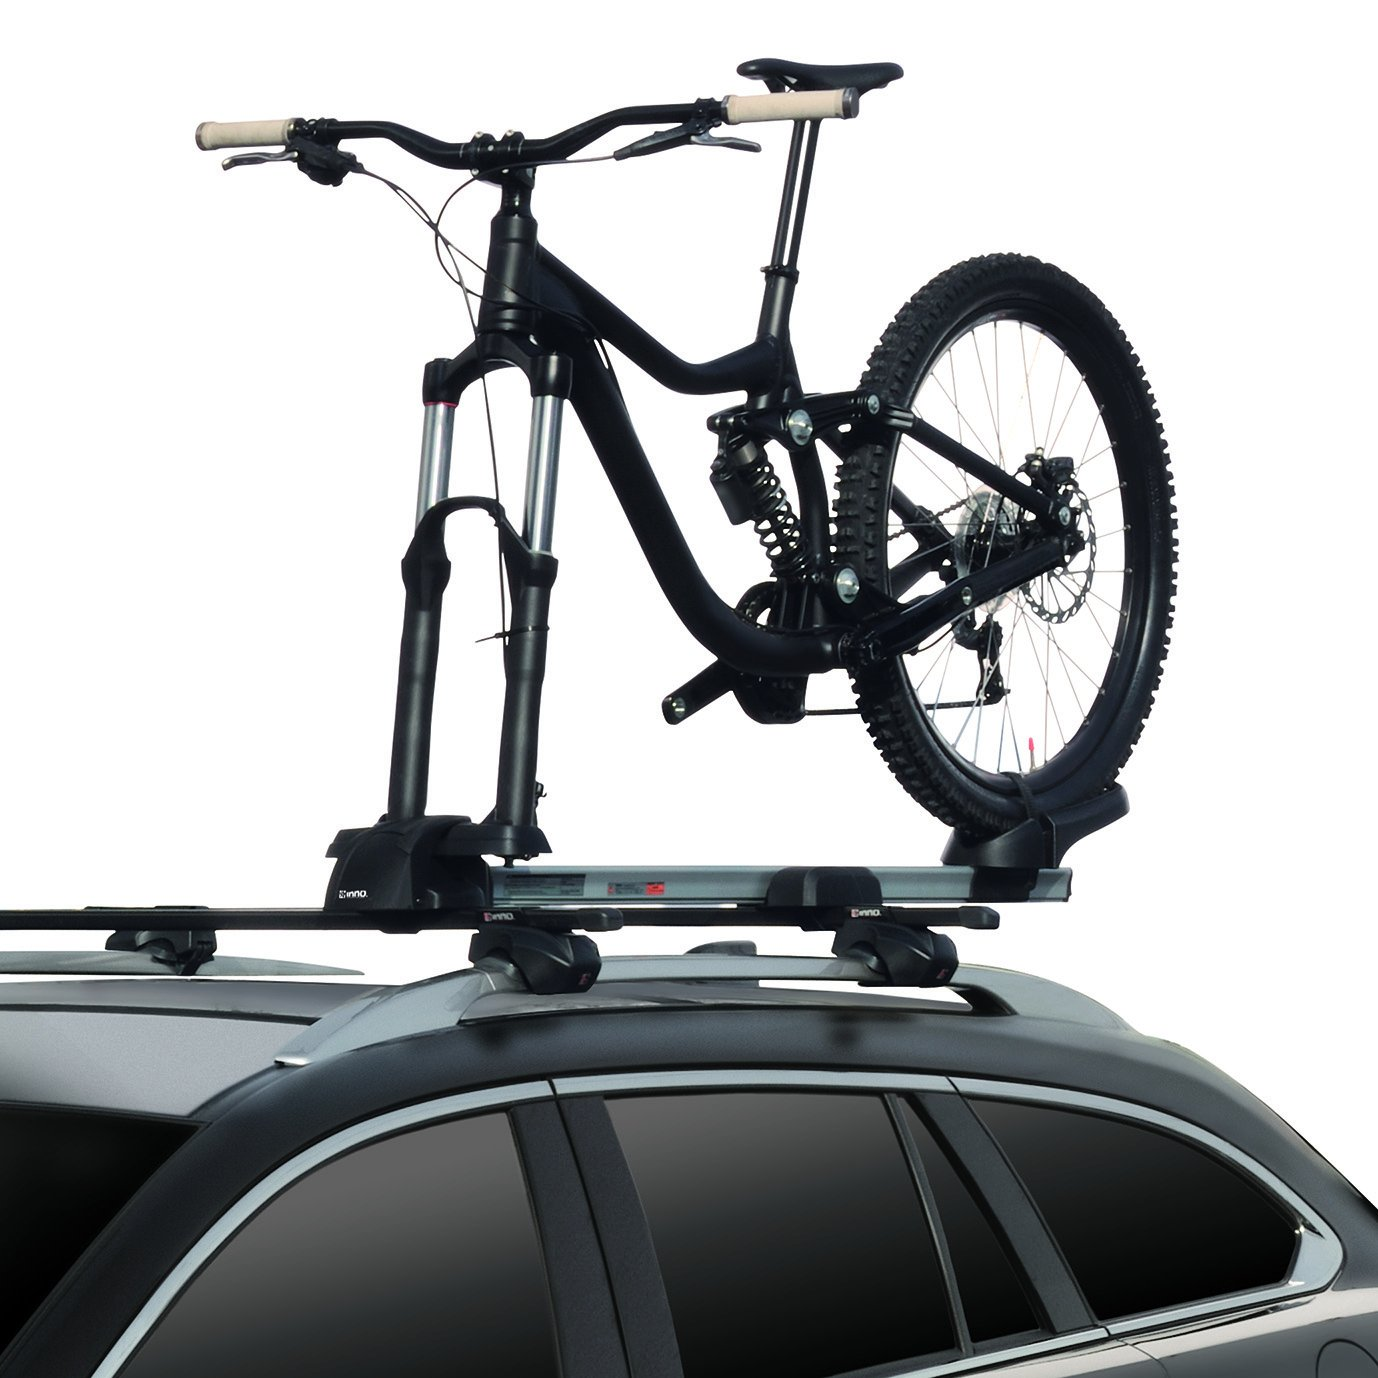 INNO INA392 Universal Mount (Fits Rounds, Square, Aero and Most Factory Bars) Multi-Fork Locking Bike Rack (1-Bike)